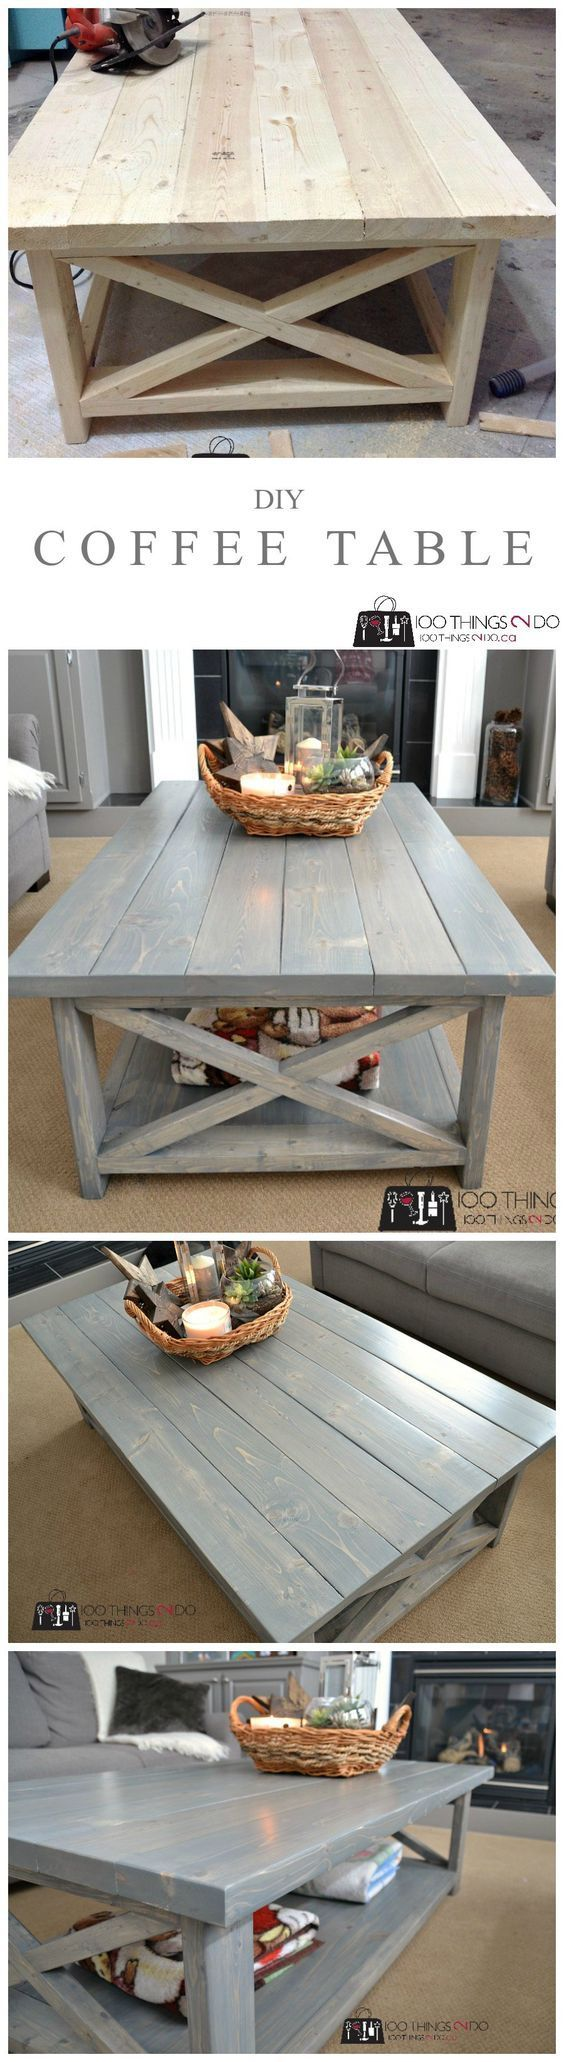 DIY Coffee Table | 15 Easy DIY Reclaimed Wood Projects                                                                                                                                                                                 More